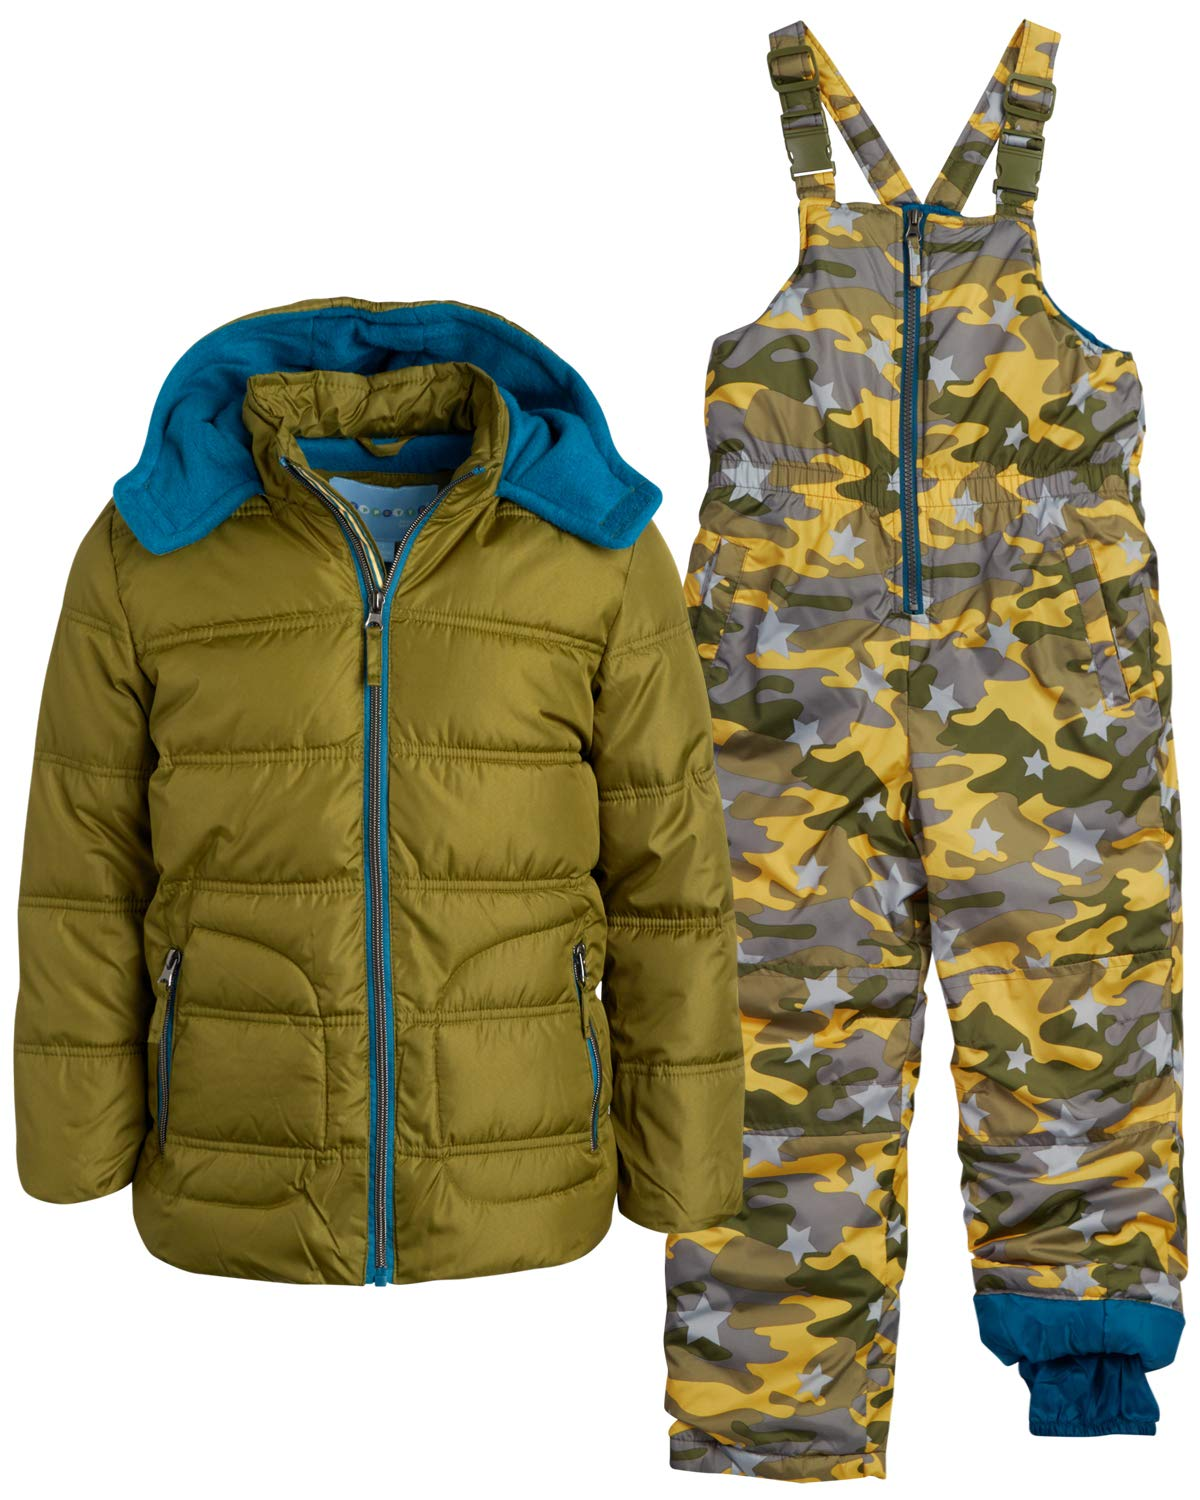 Wippette Boys' 2-Piece Heavyweight Snowsuit with Puffer Jacket and Snow Bib Pants, Size 5, Olive Camo by Wippette